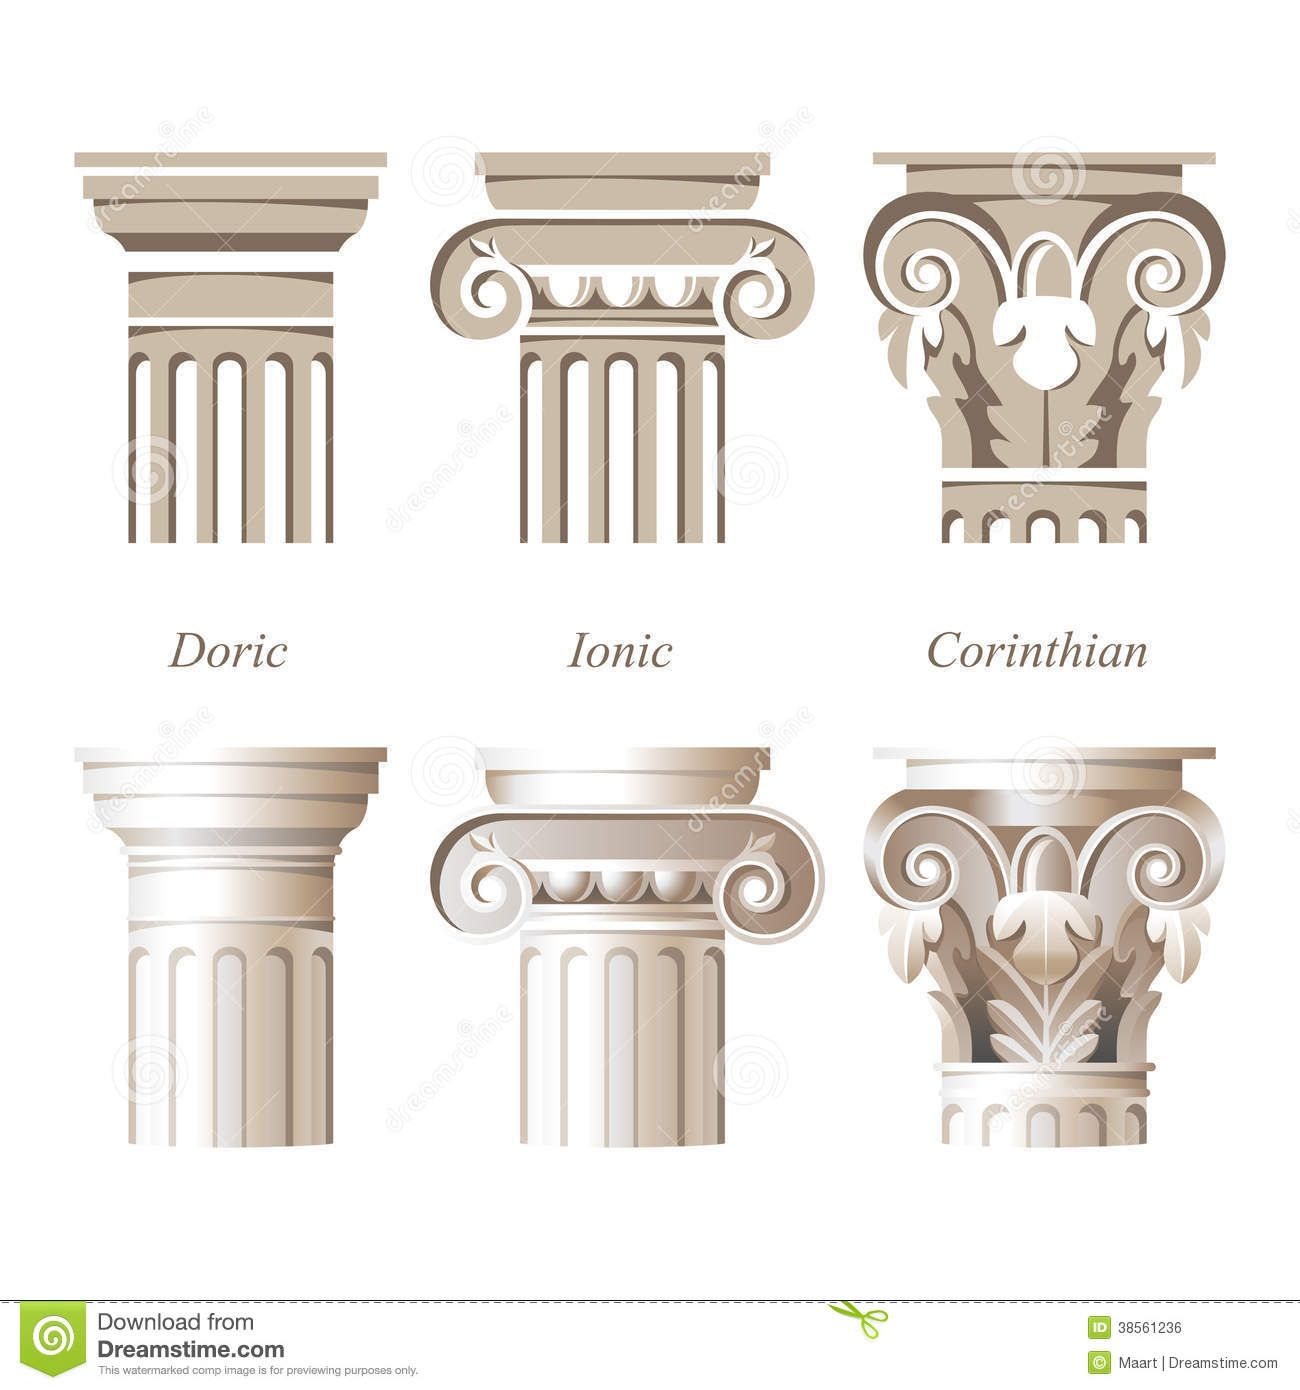 types de colonnes recherche google ha ordre architectural pinterest art grec grec et. Black Bedroom Furniture Sets. Home Design Ideas